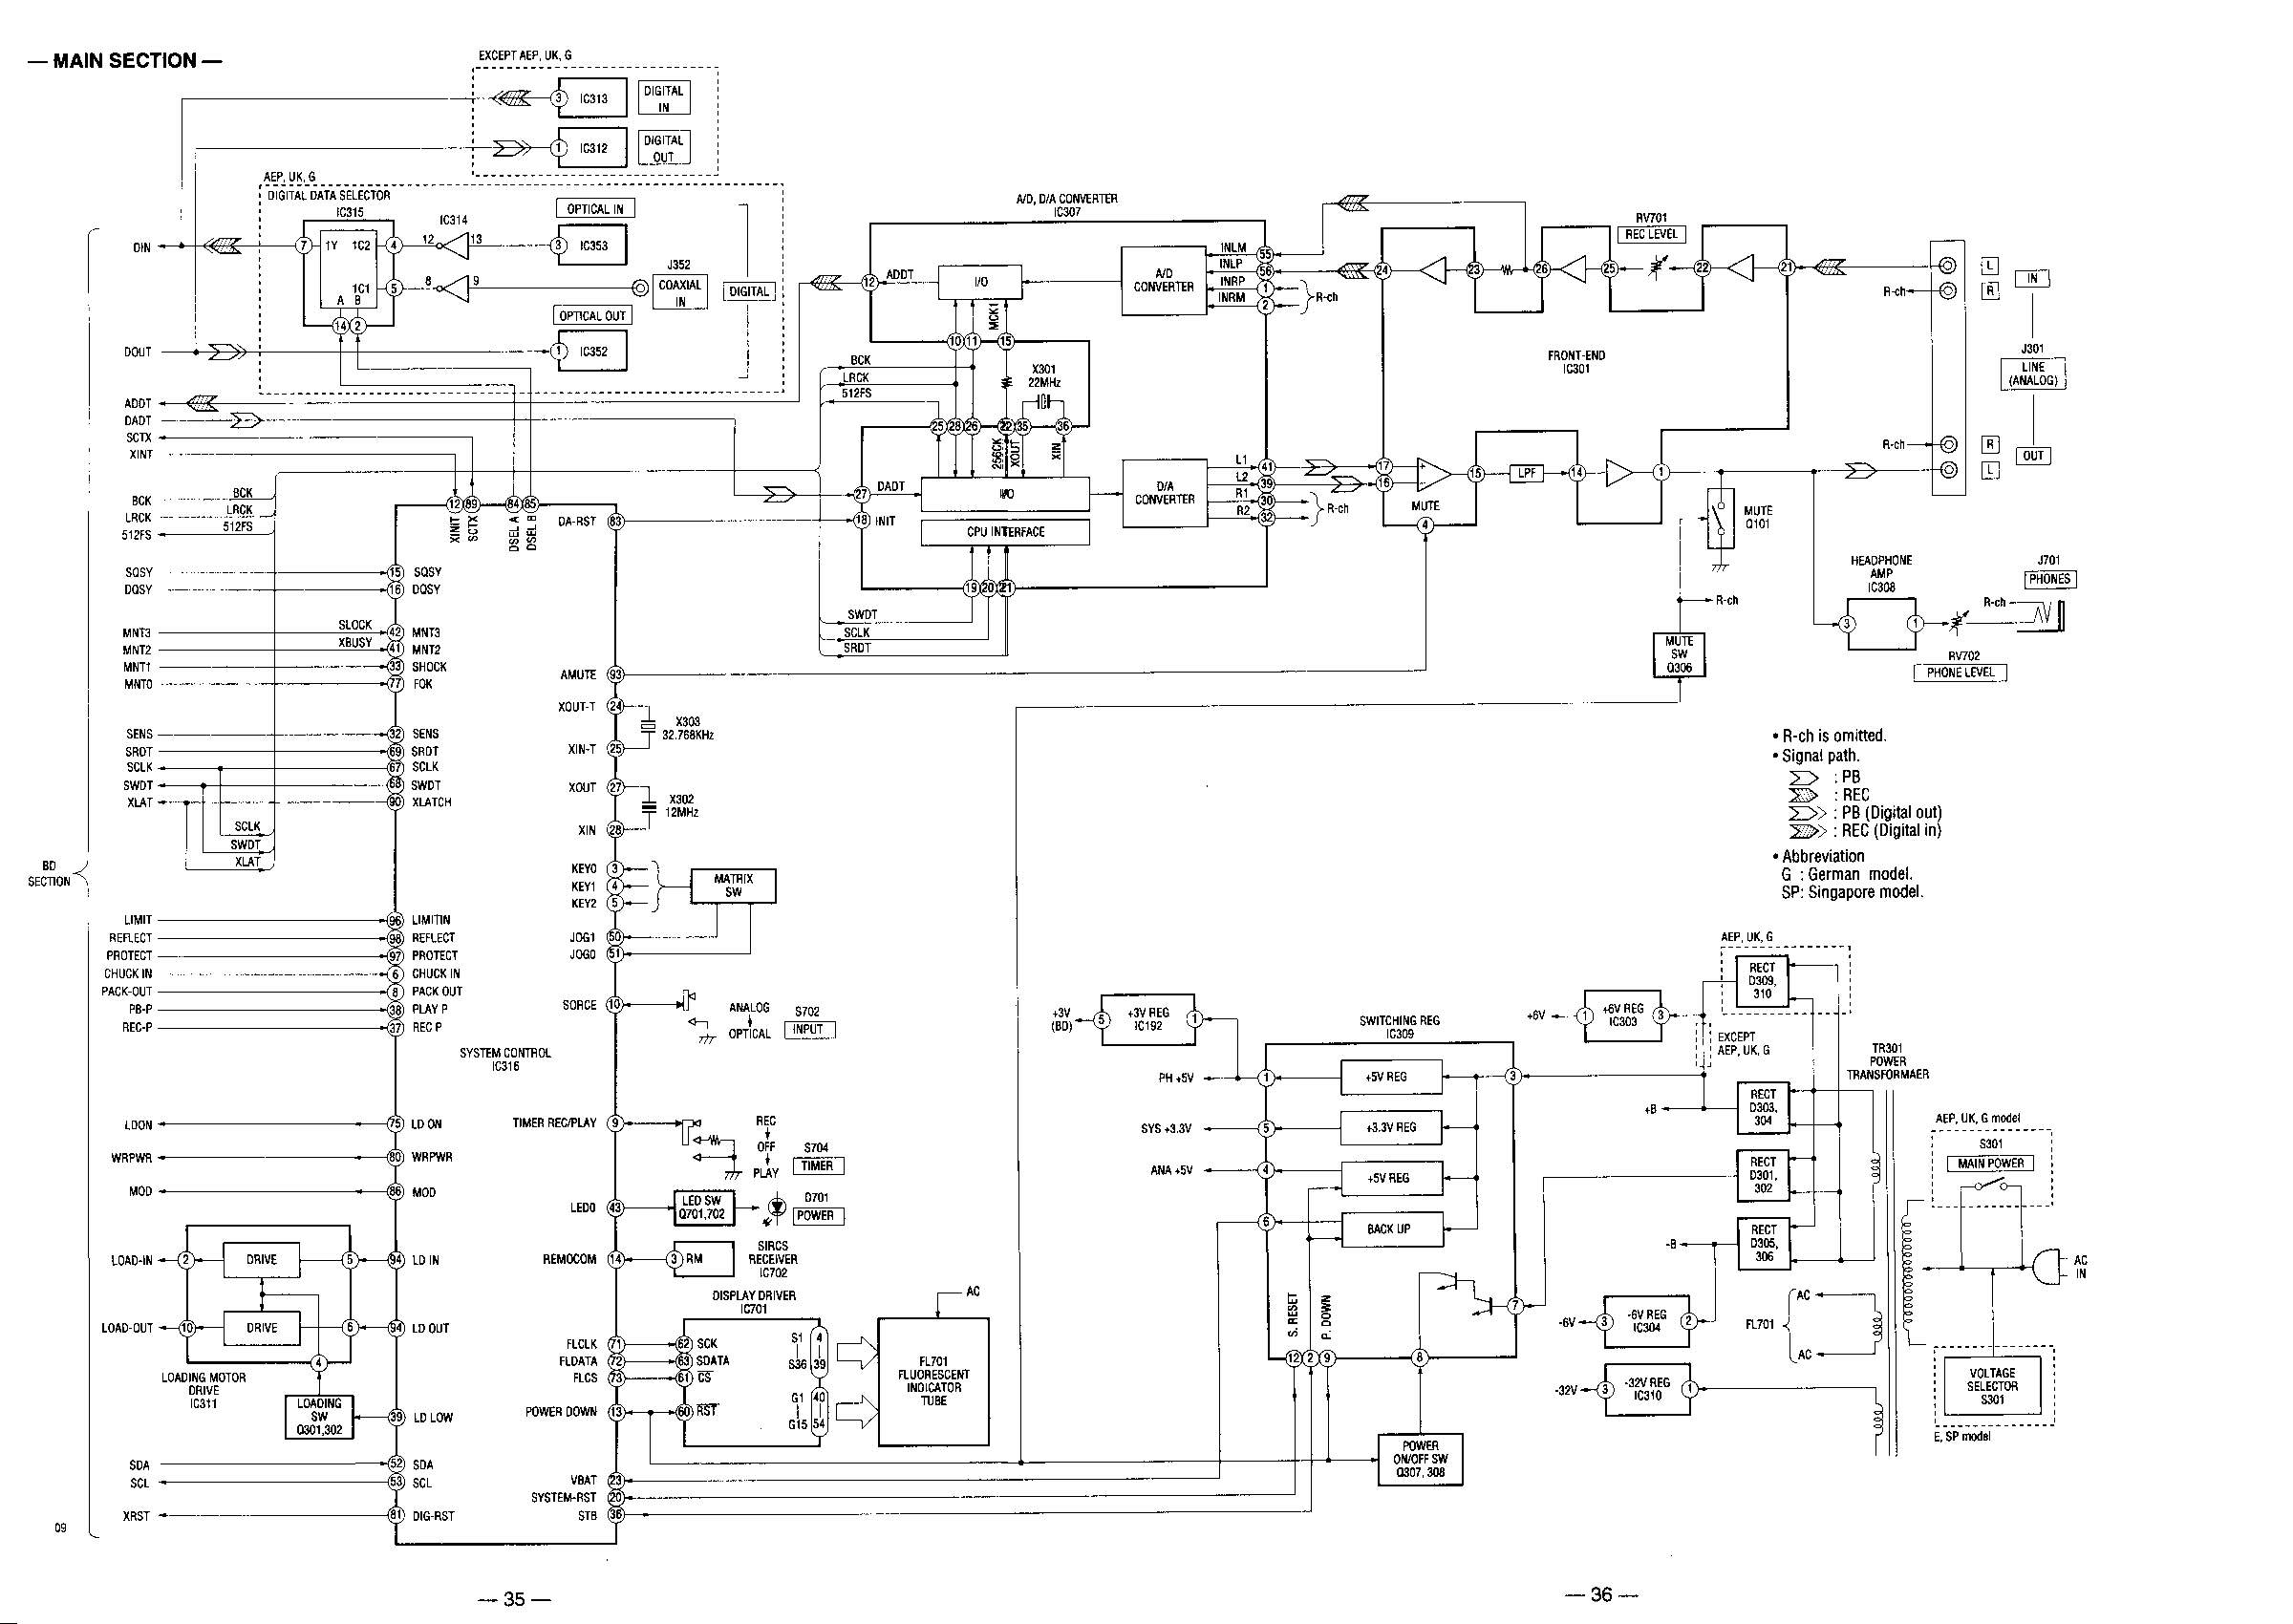 Wiring Diagram For Jvc Cd Player Md Community Page Sony Mds Je510 S38